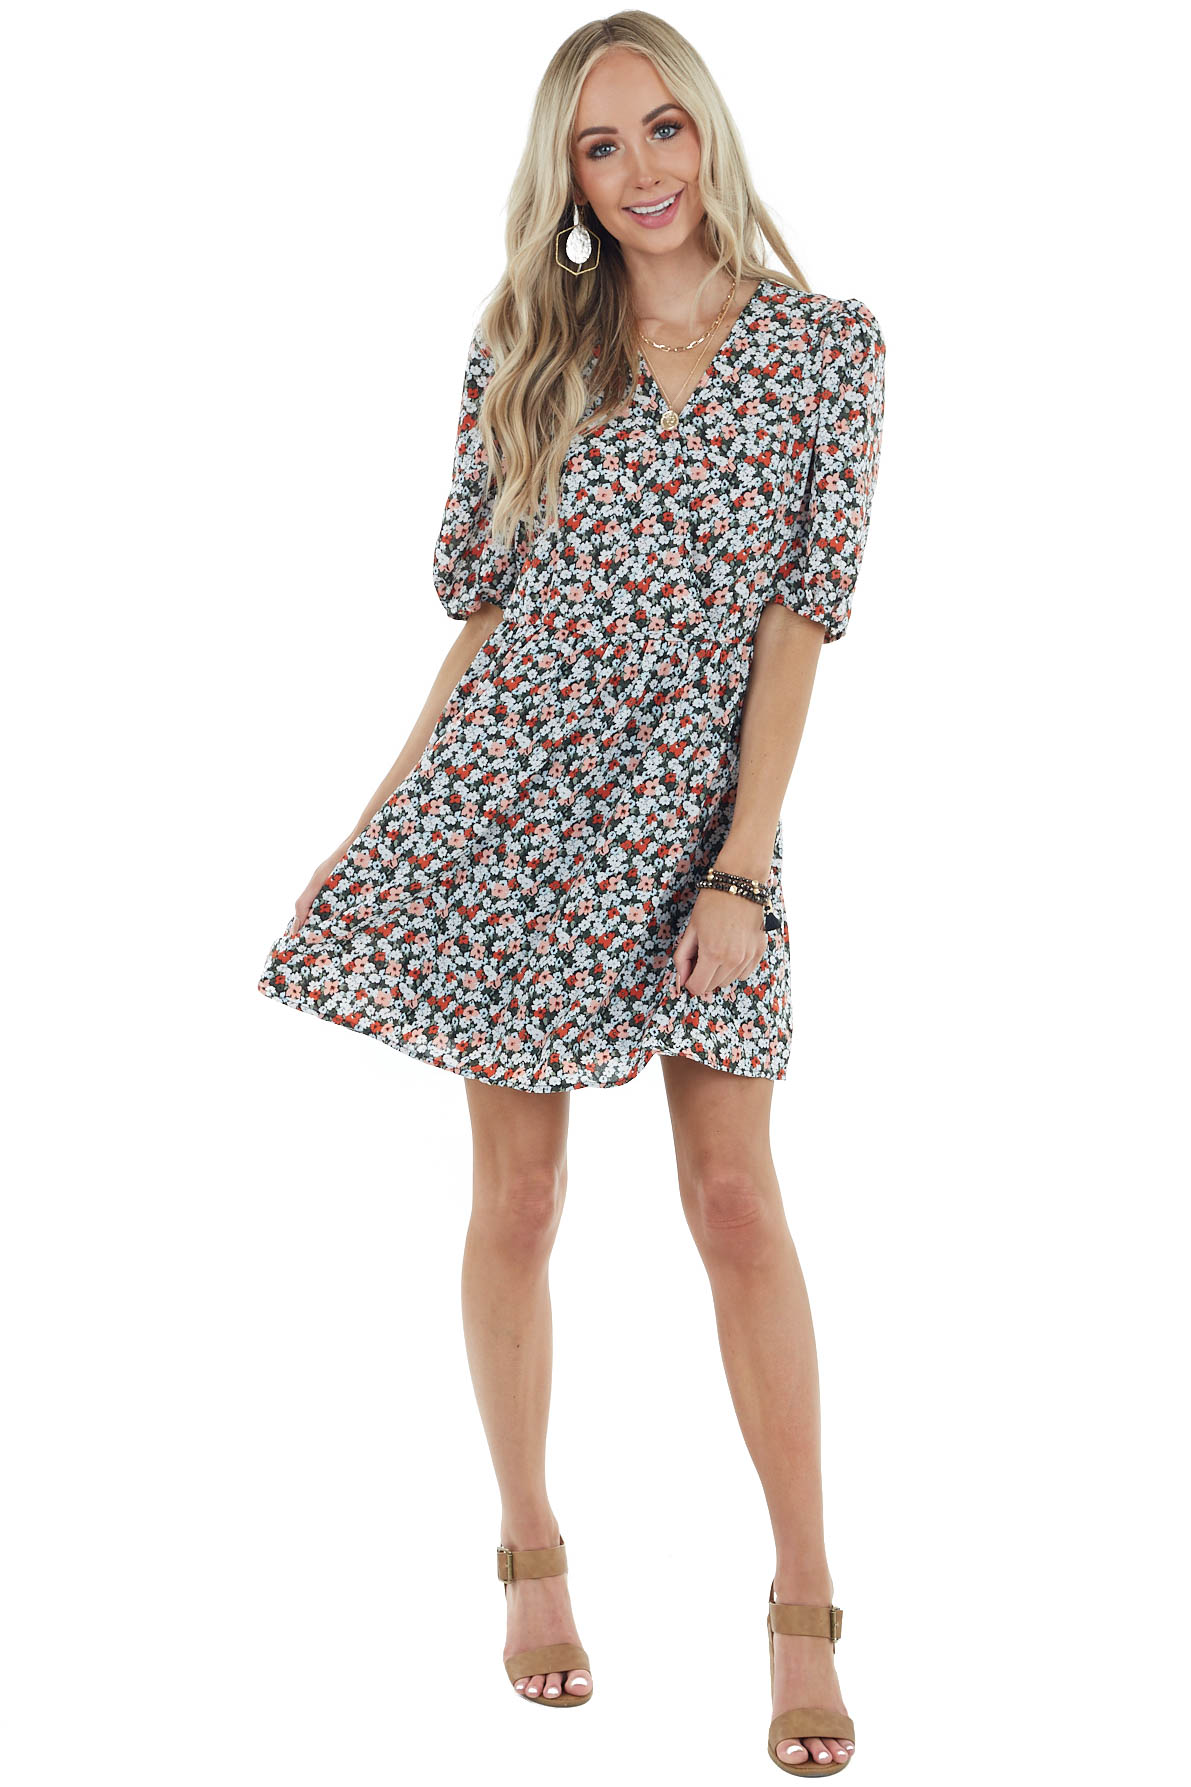 Peach Floral Print Surplice Dress with Short Sleeves